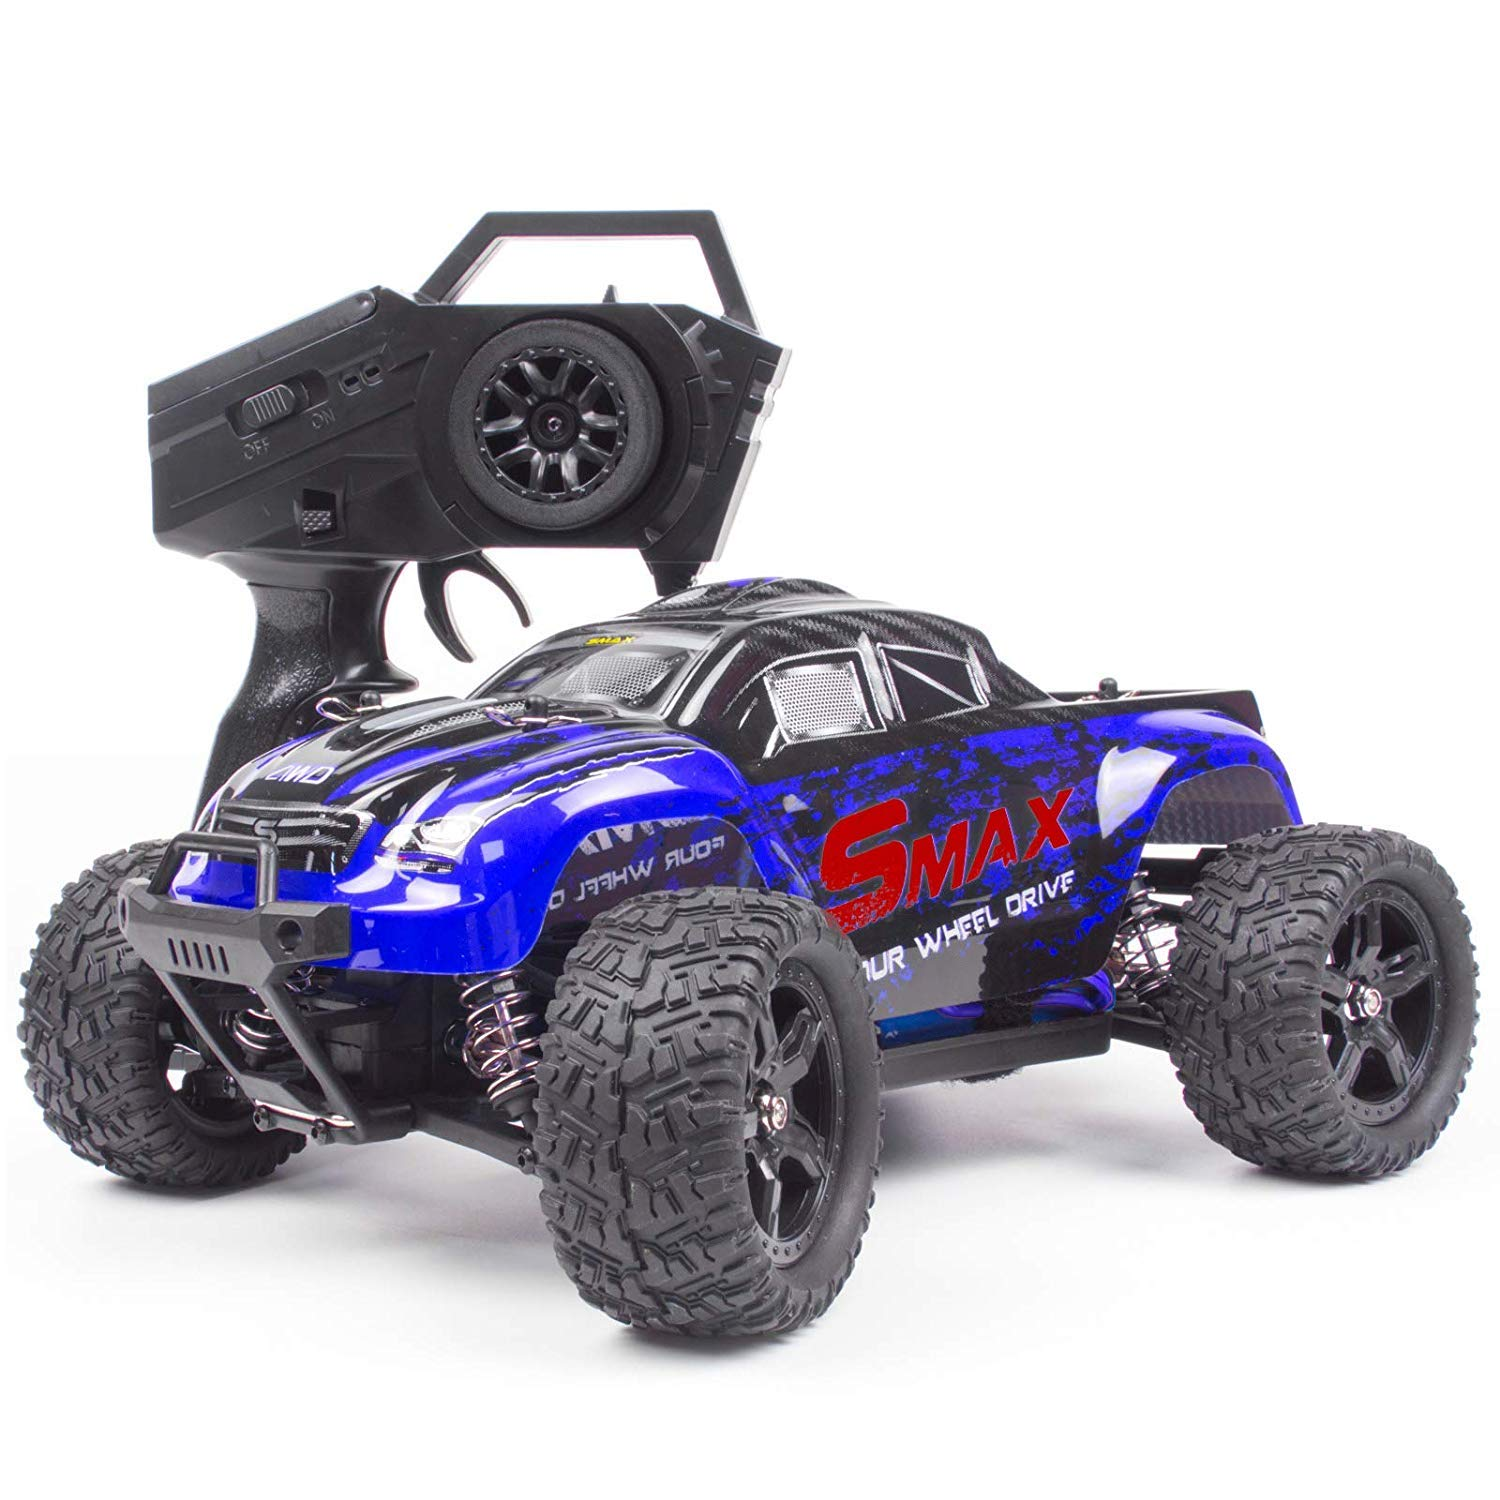 Cheerwing 1:16 2.4Ghz 4WD High Speed RC Off-Road Monster Truck Brushed Remote Control Car, Blue